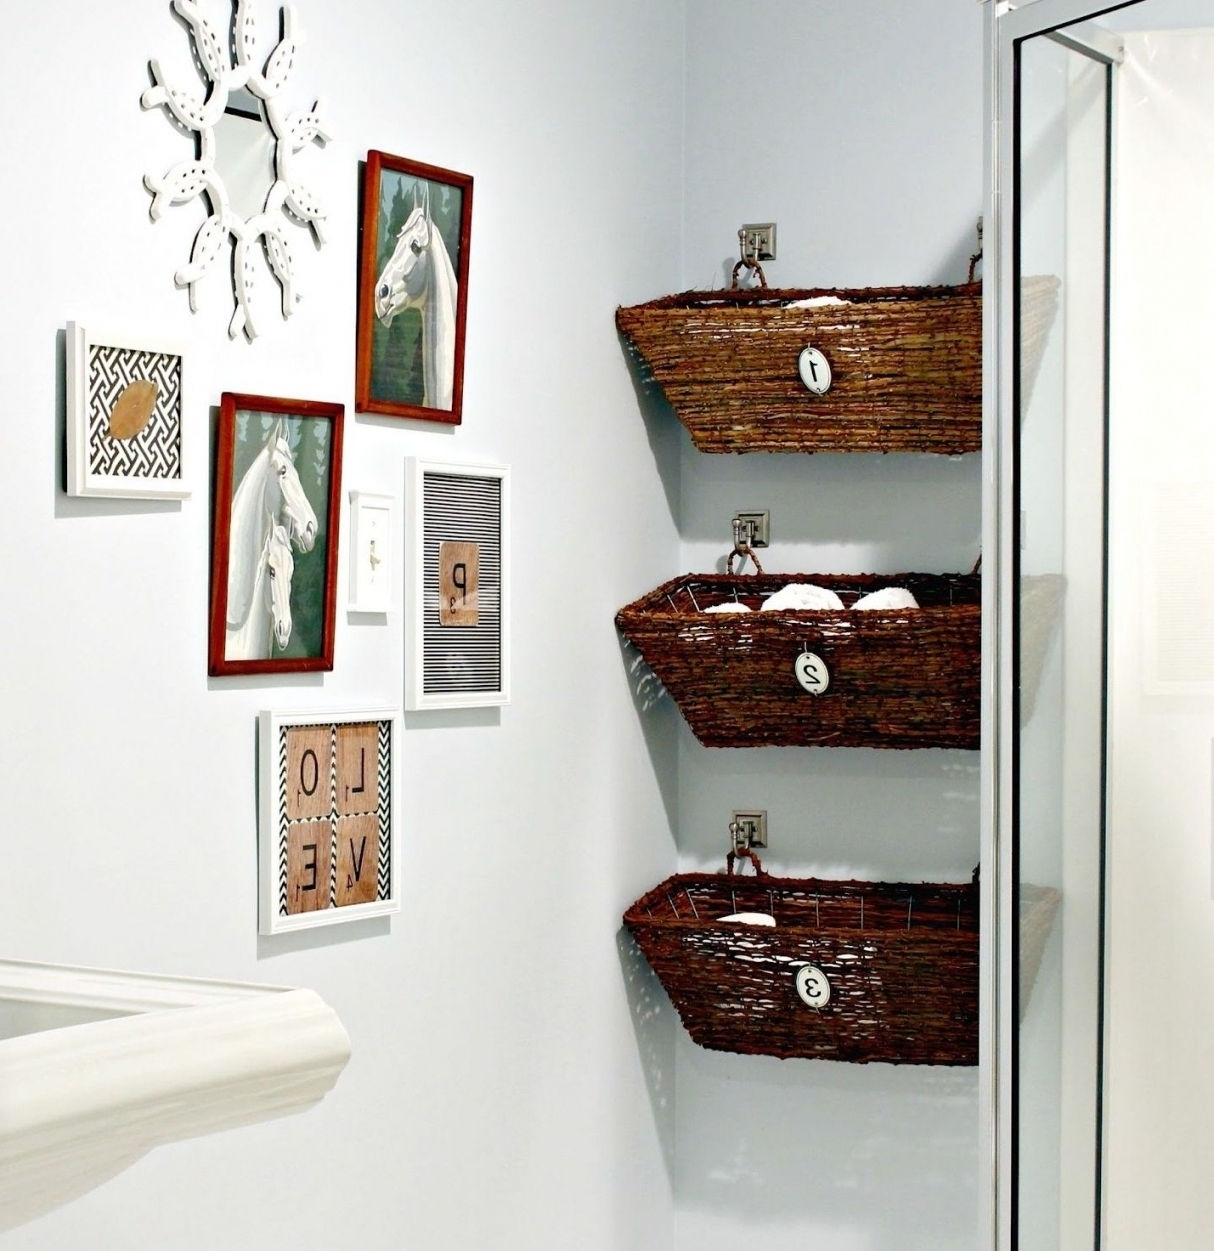 Most Popular Wall Art For The Bathroom With Regard To Picture Frame Wall Art Ideas (View 9 of 15)